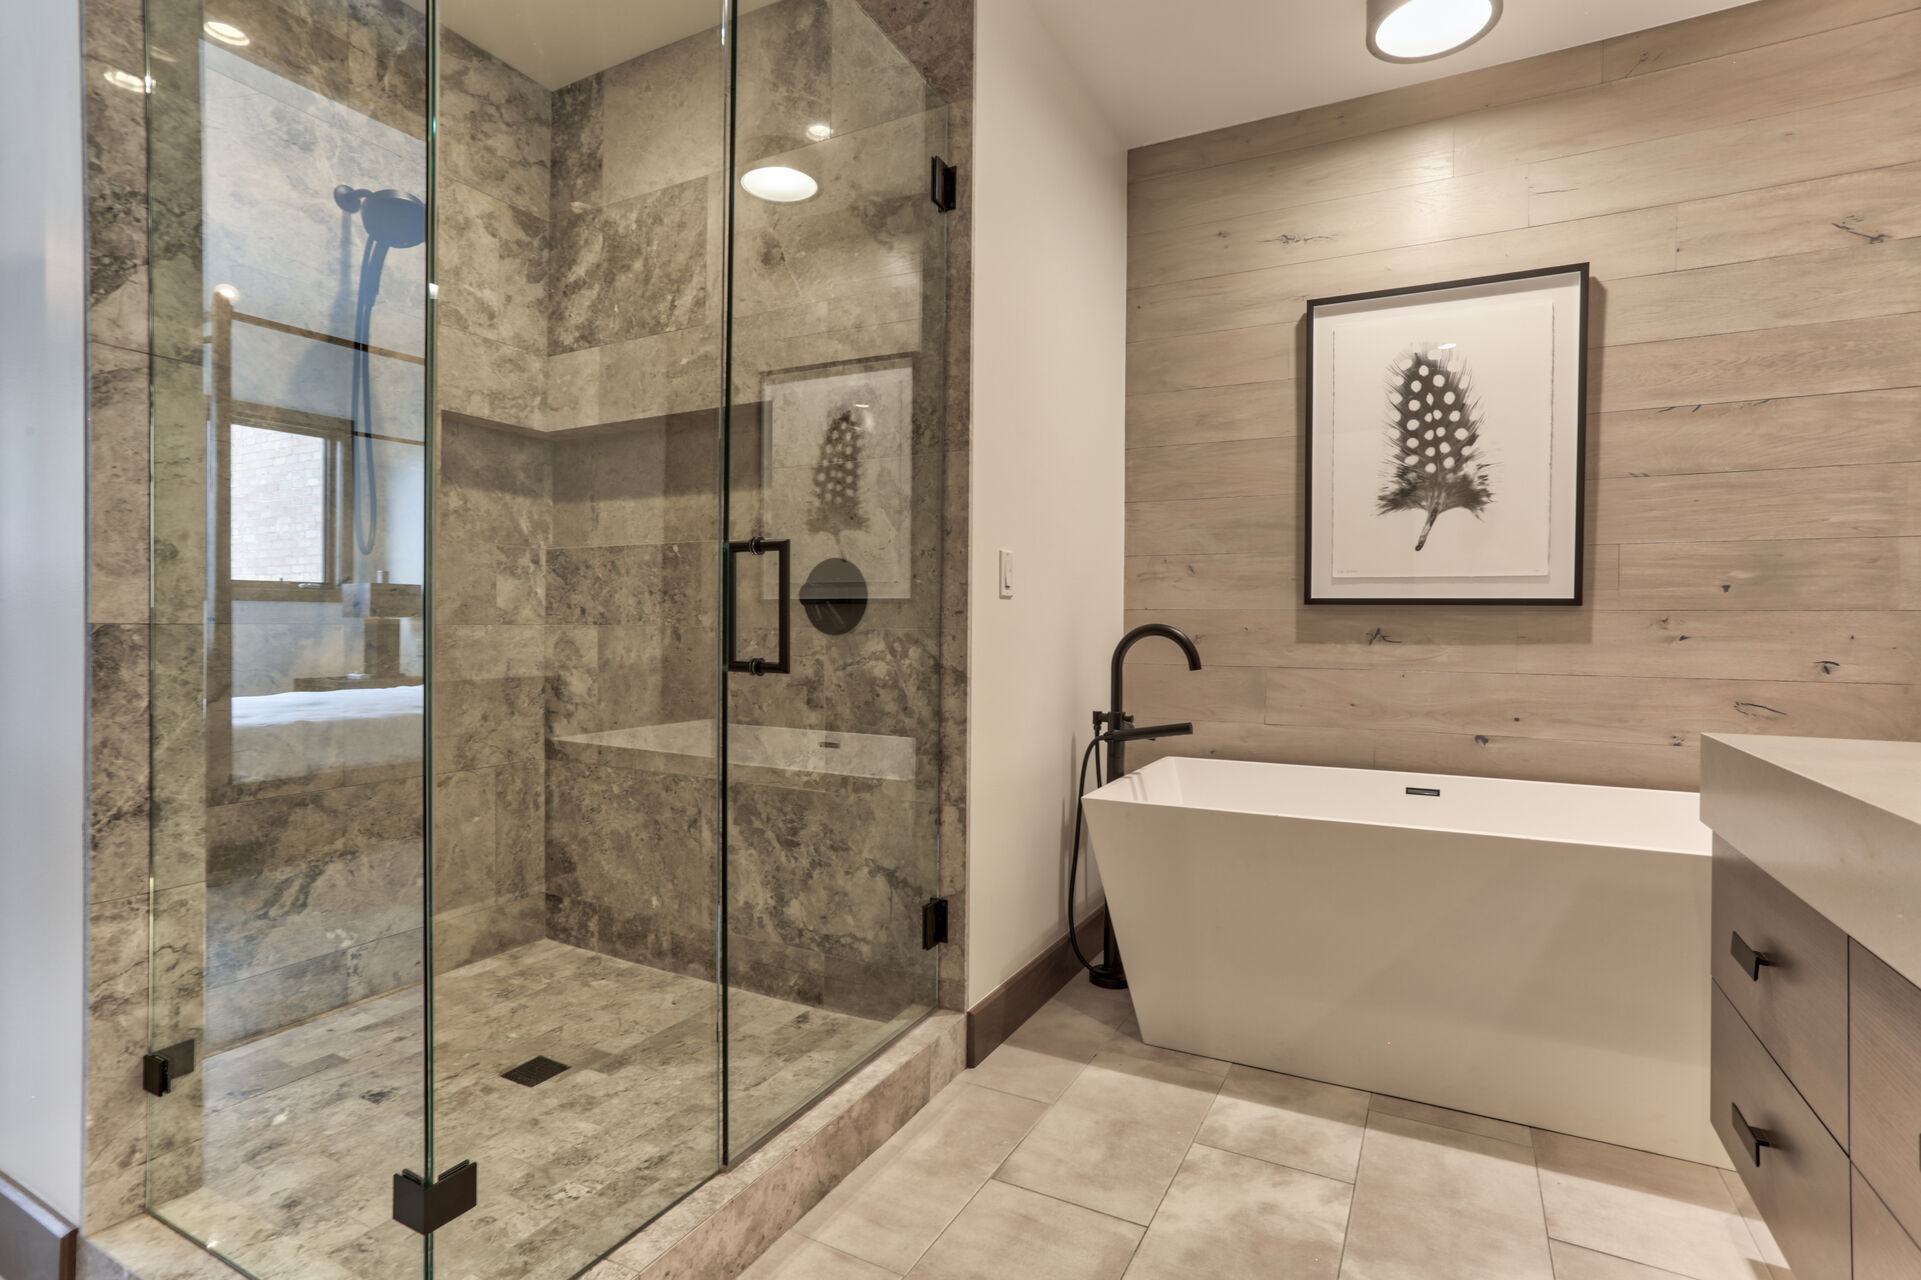 Master Bath with Dual Vanities, a Soaking Tub and Large Tile Shower